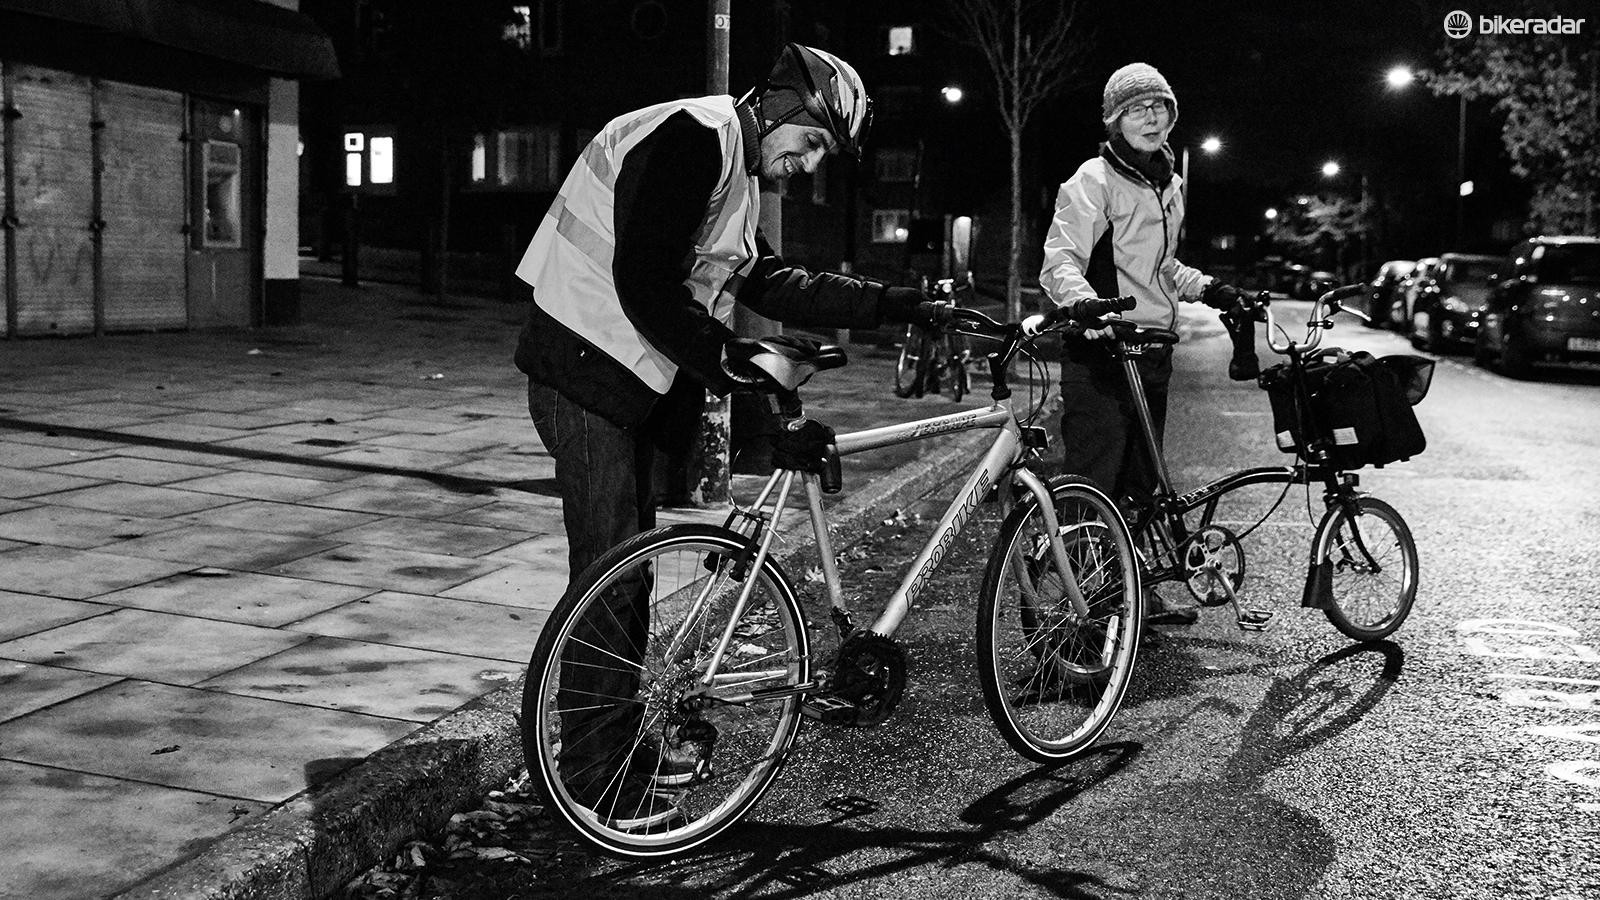 The Bike Project also provides helmets, high-vis jackets, locks, lights, maps and gloves